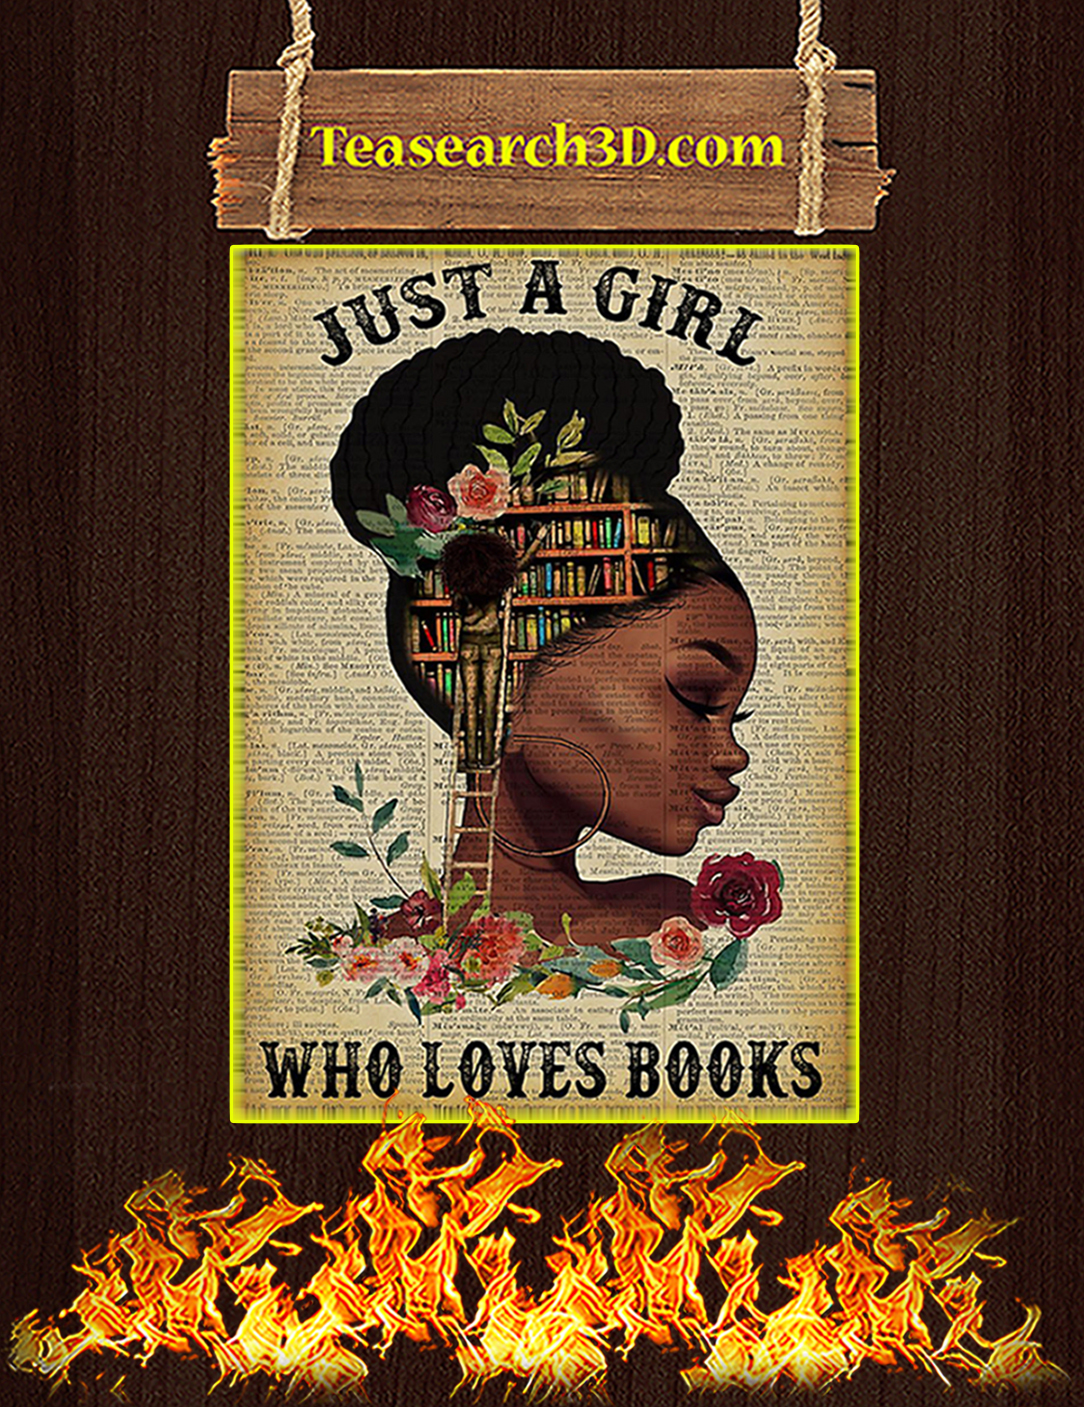 Black girl Just a girl who loves books poster A2